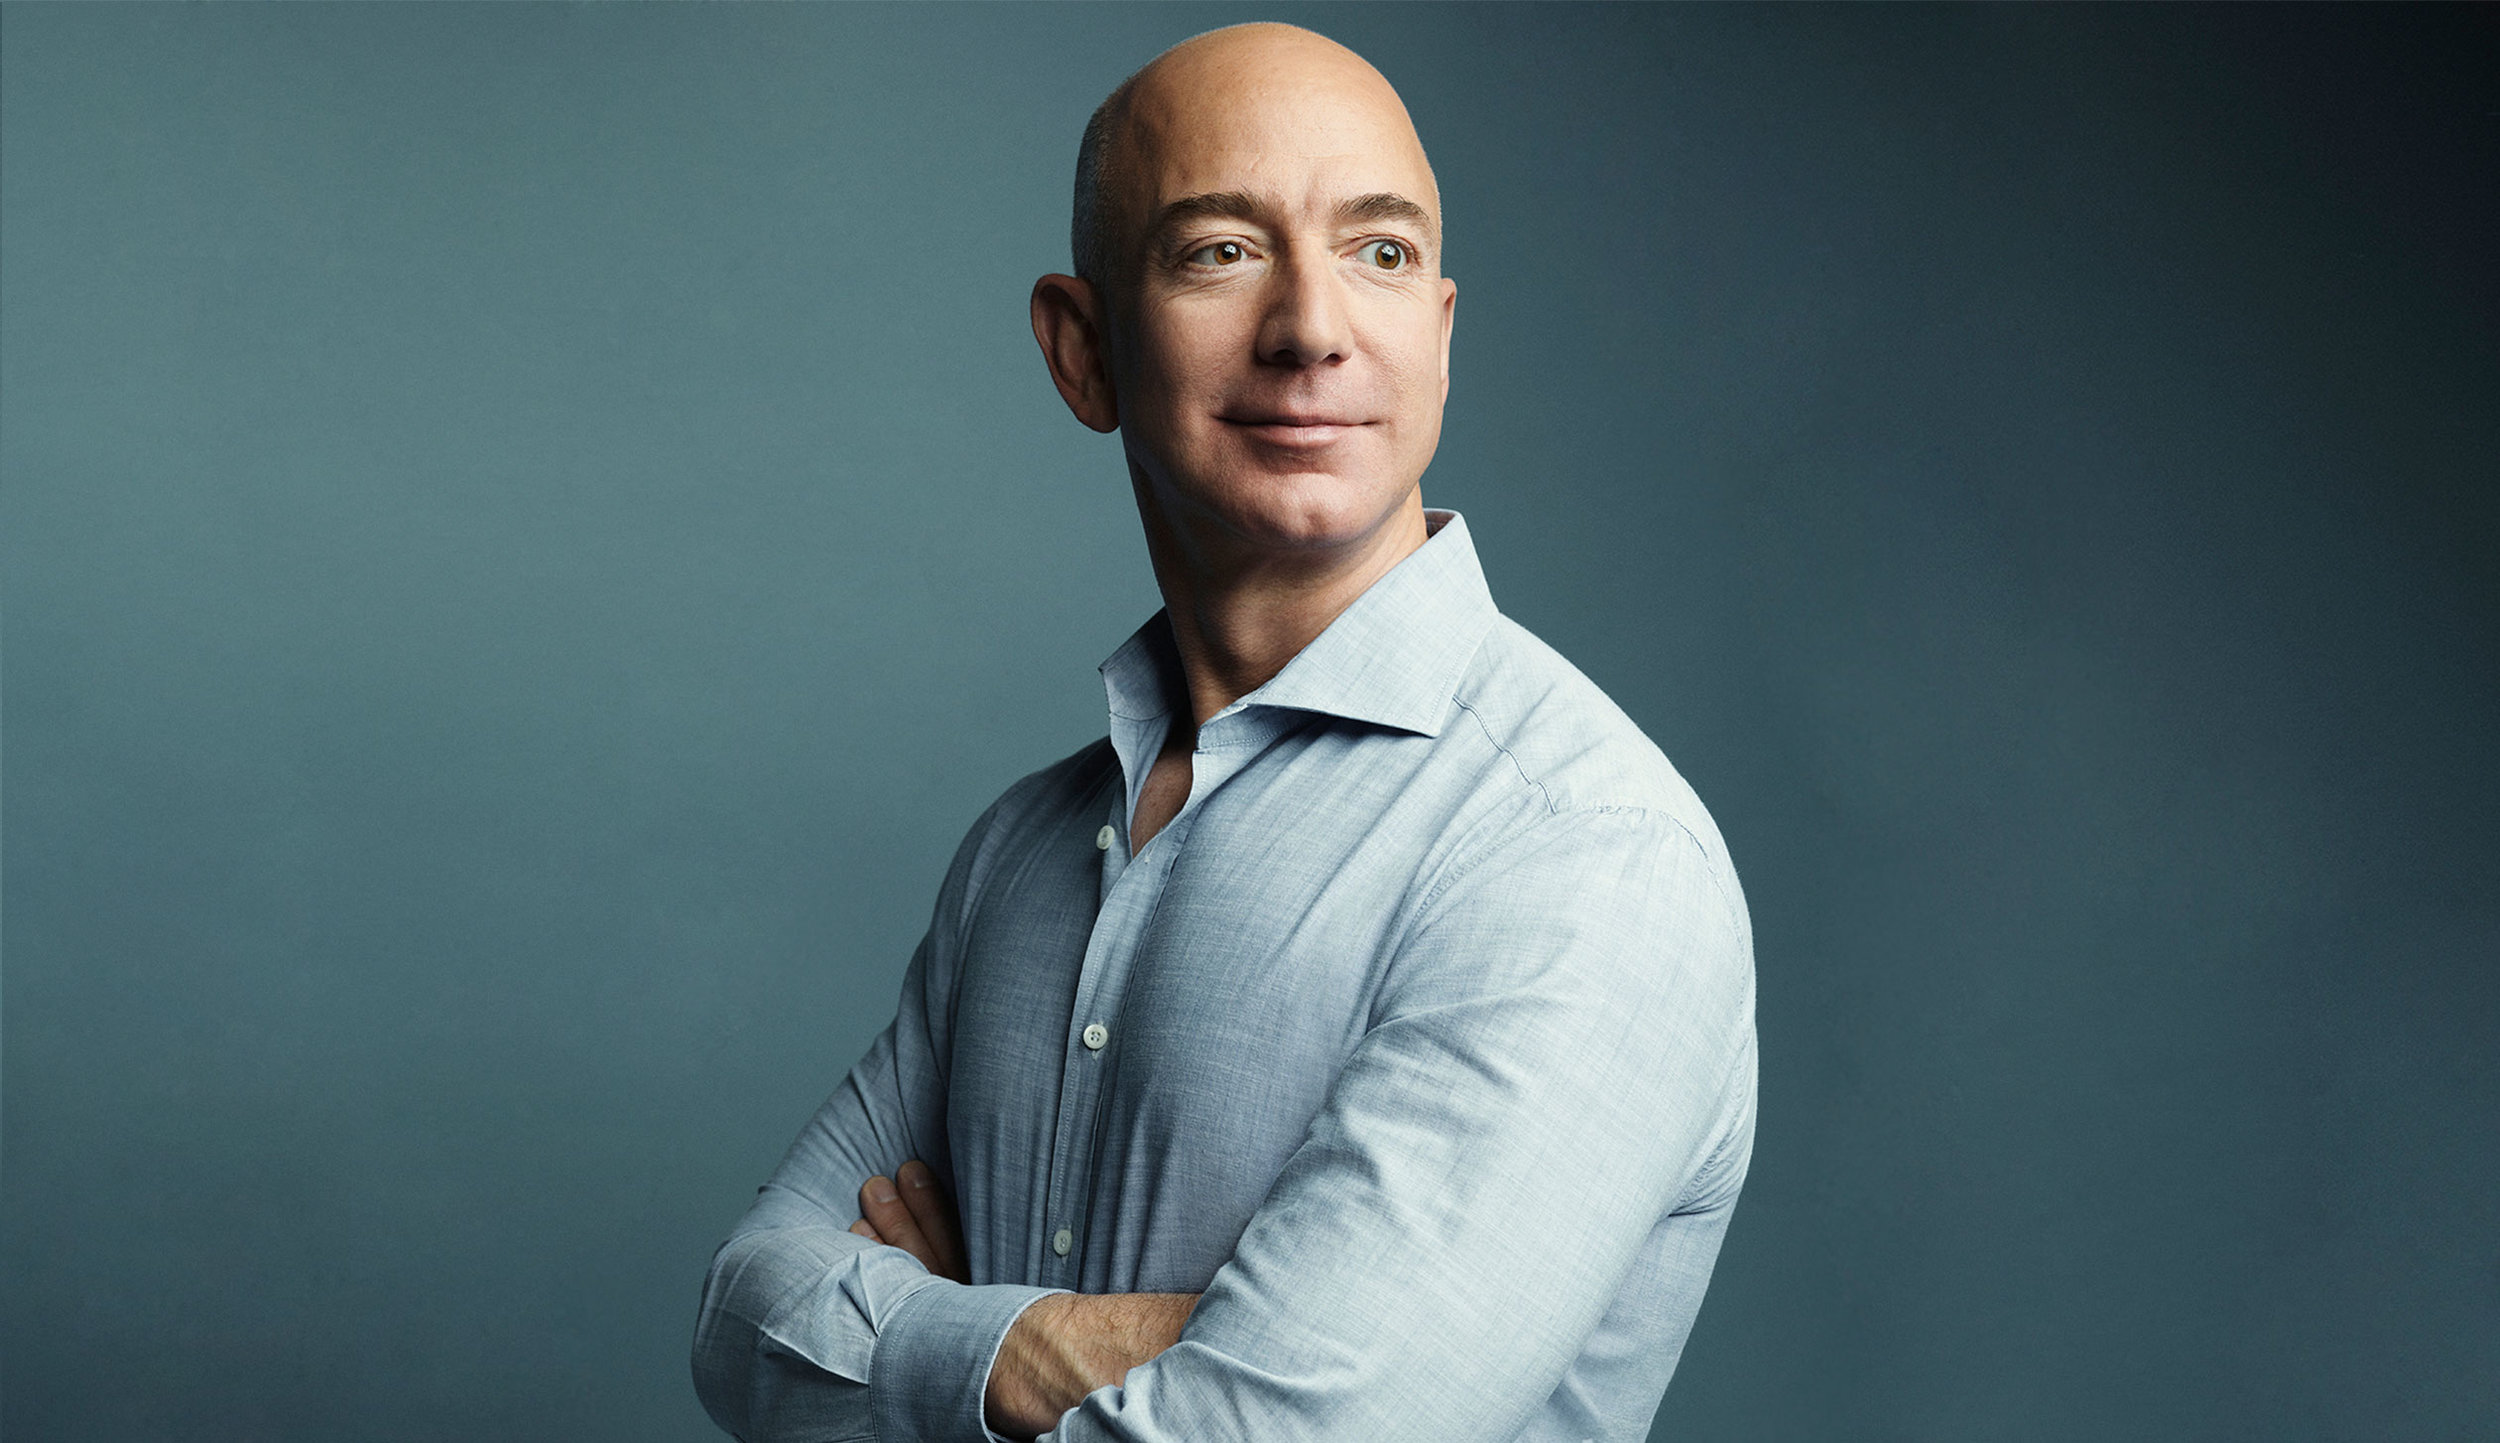 Jeff Bezos Photo via  Fortune